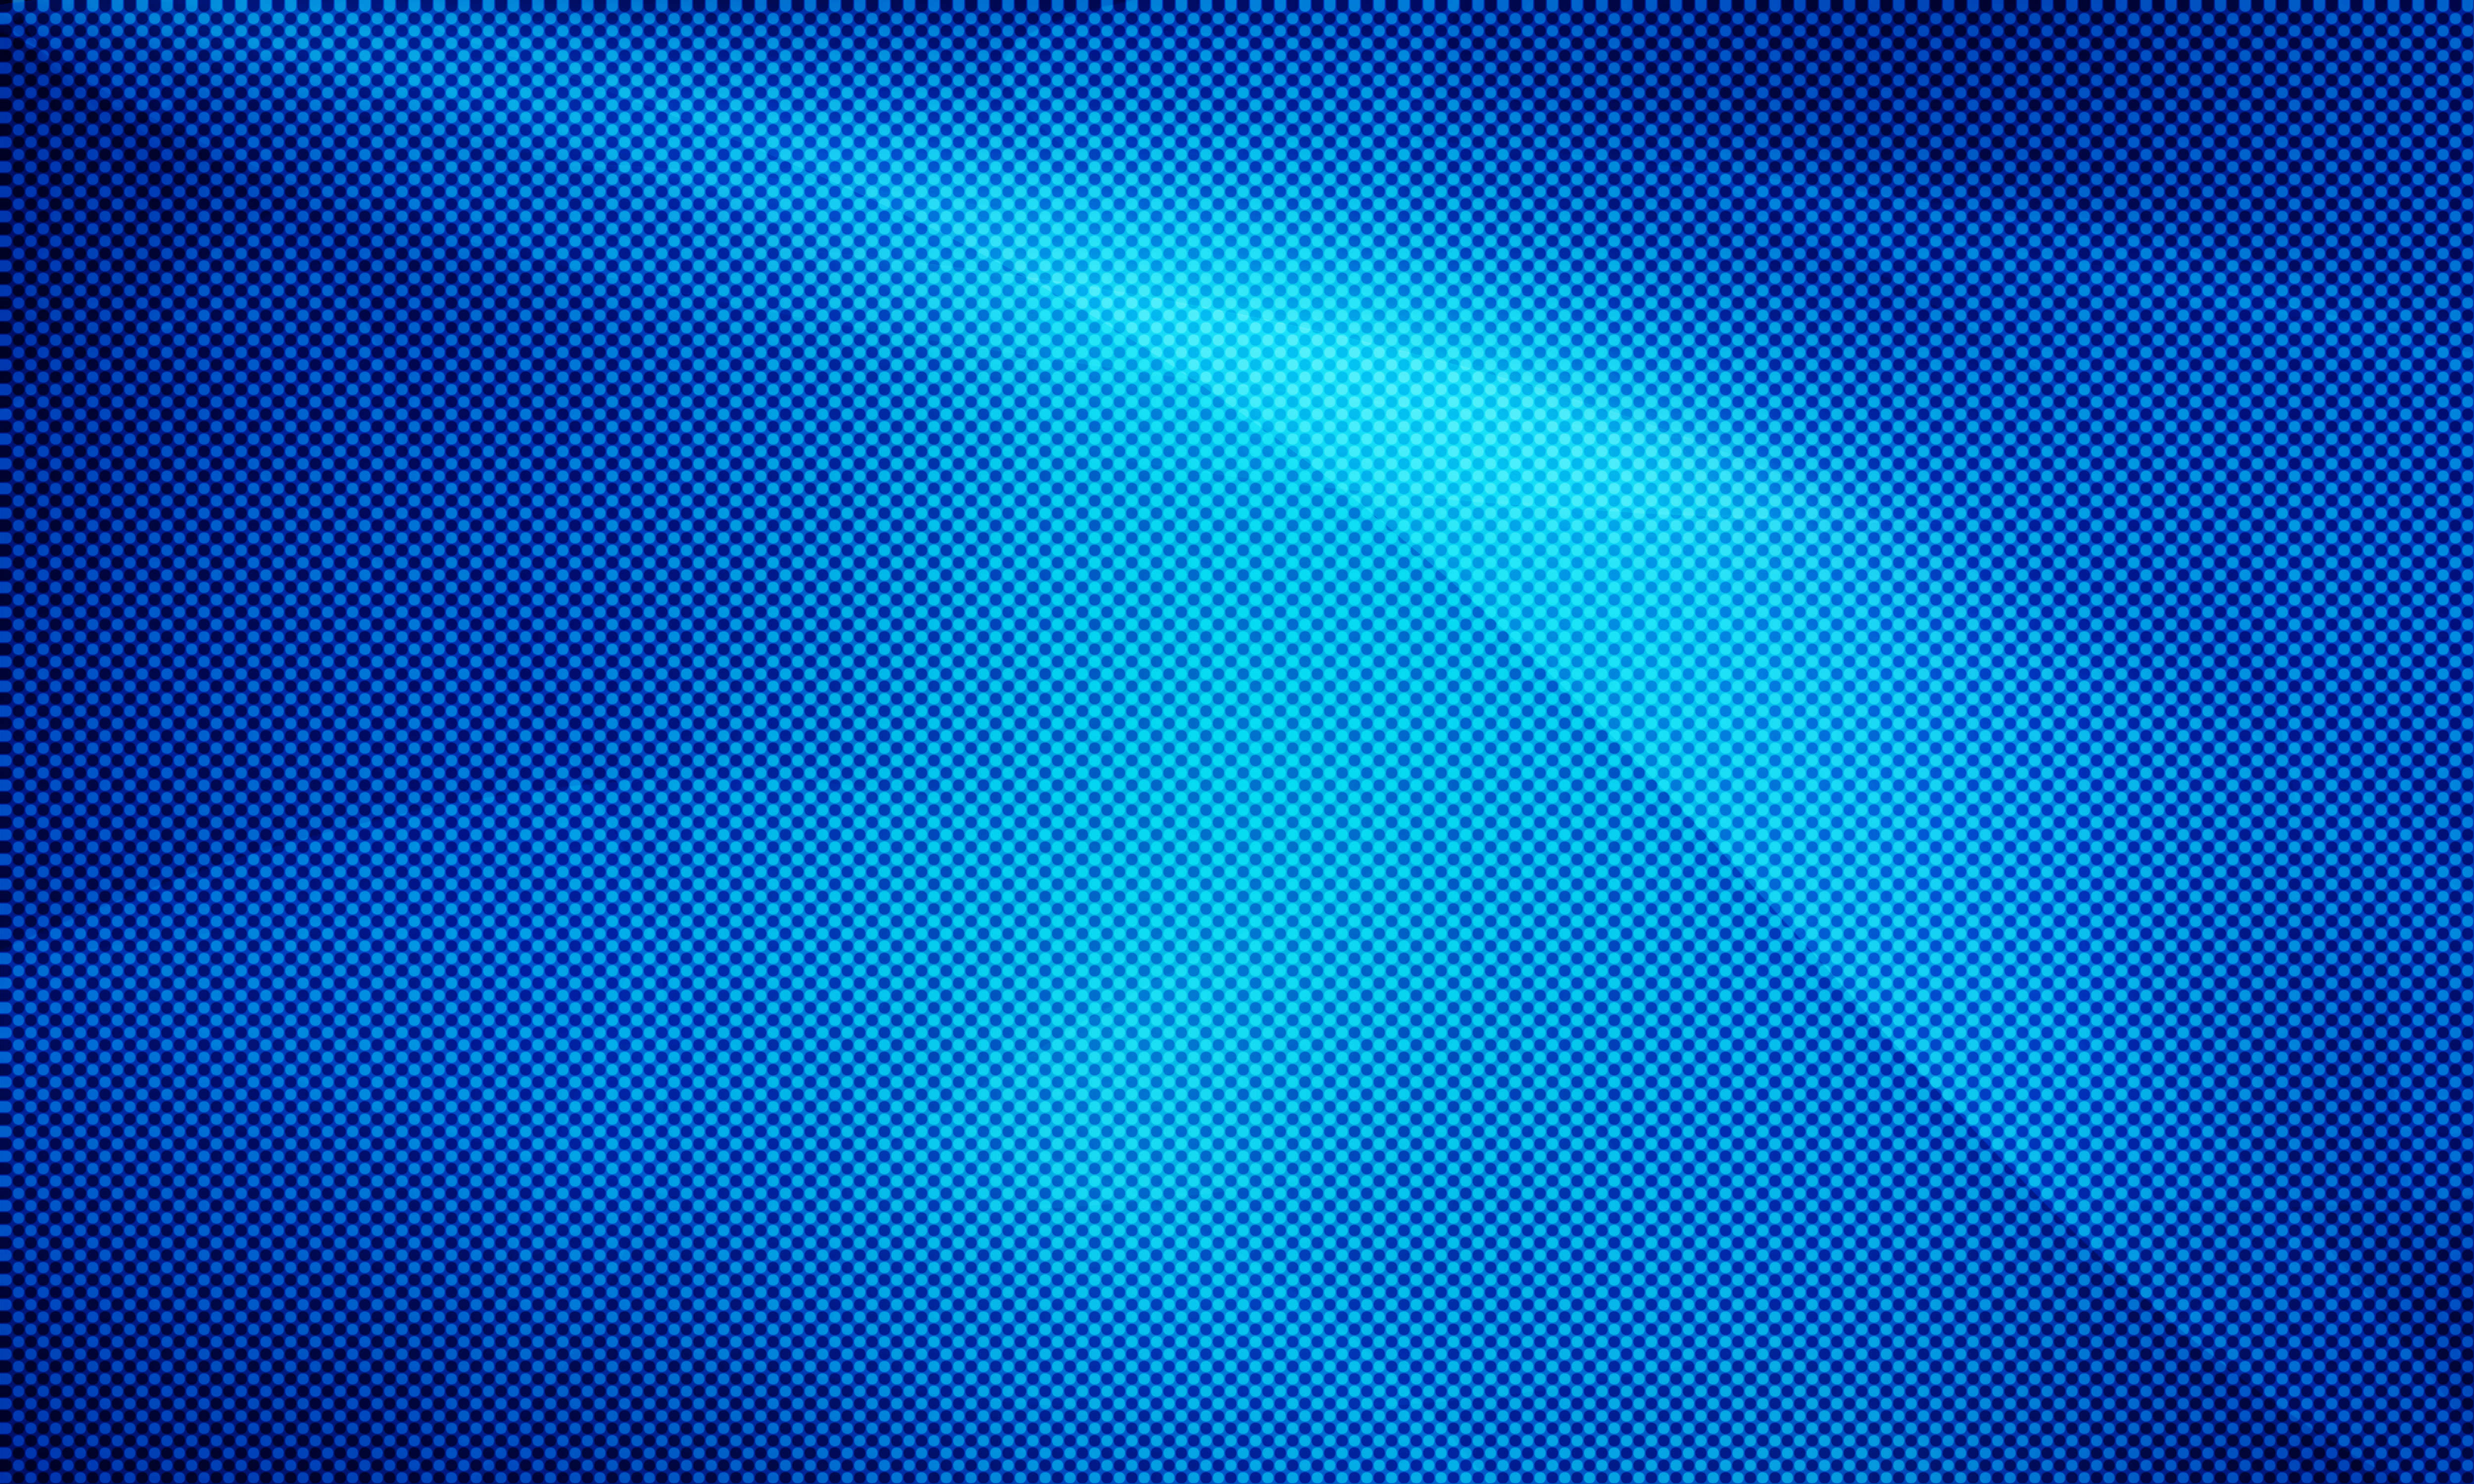 Blue Abstract Background Textures